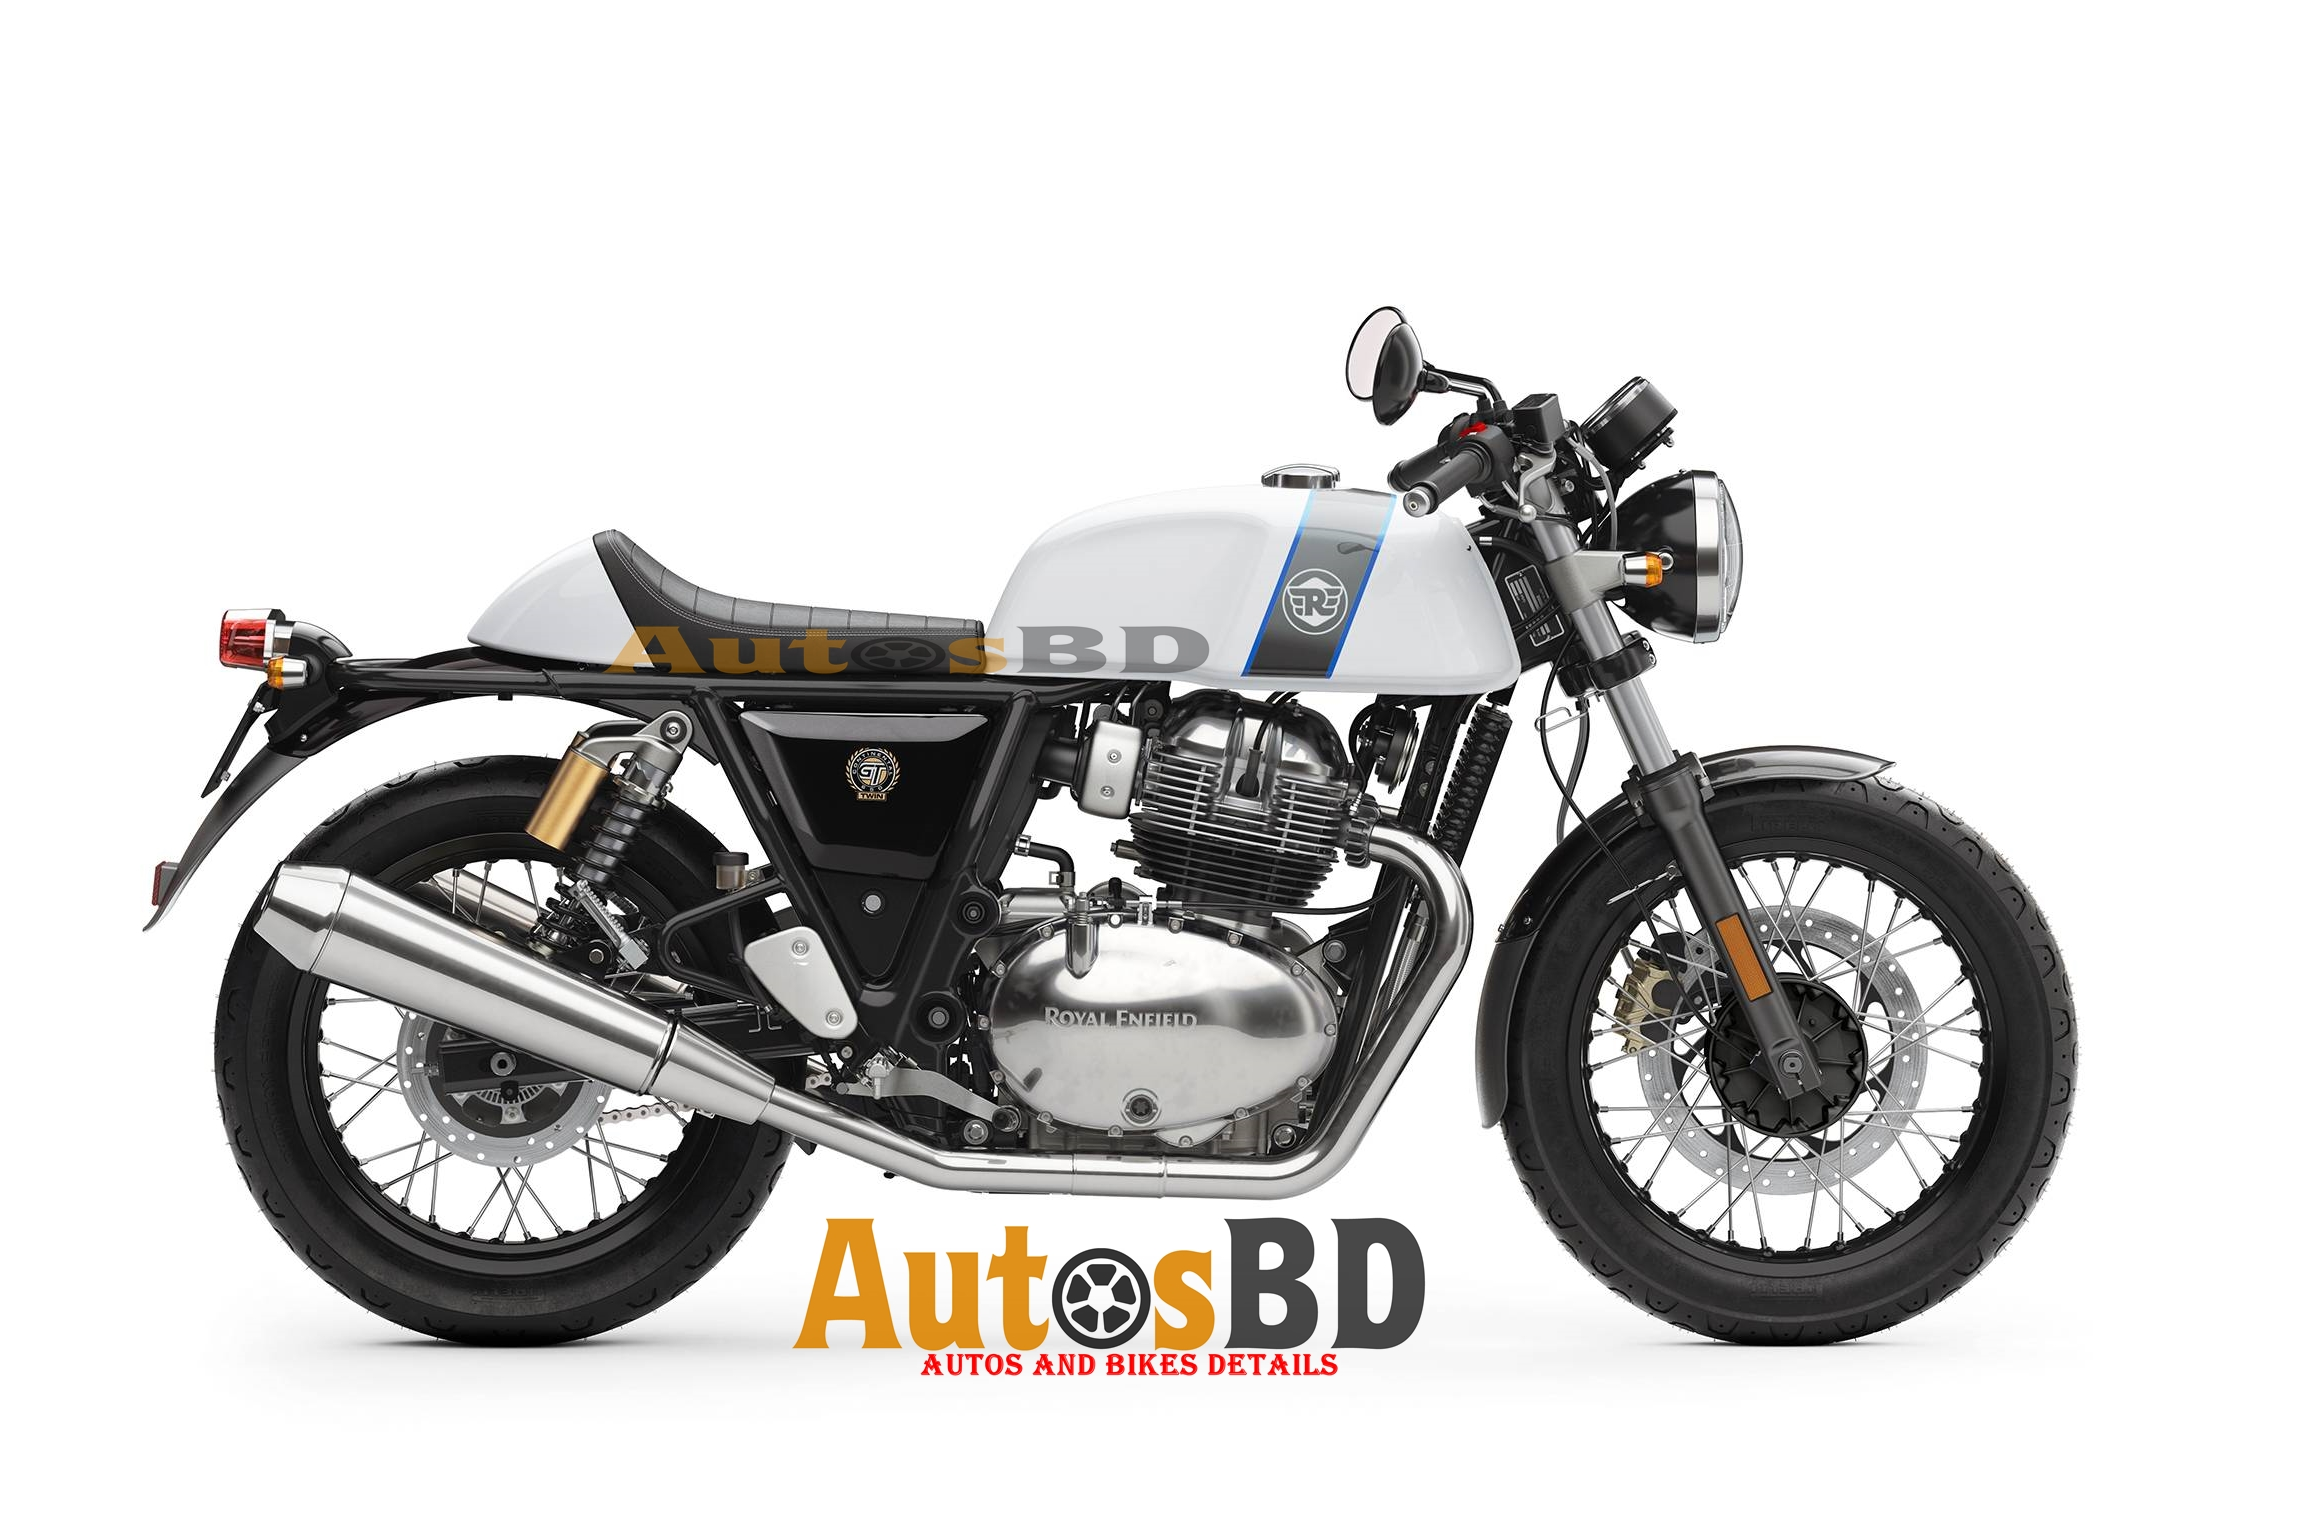 Royal Enfield Continental GT 650 Motorcycle Specification